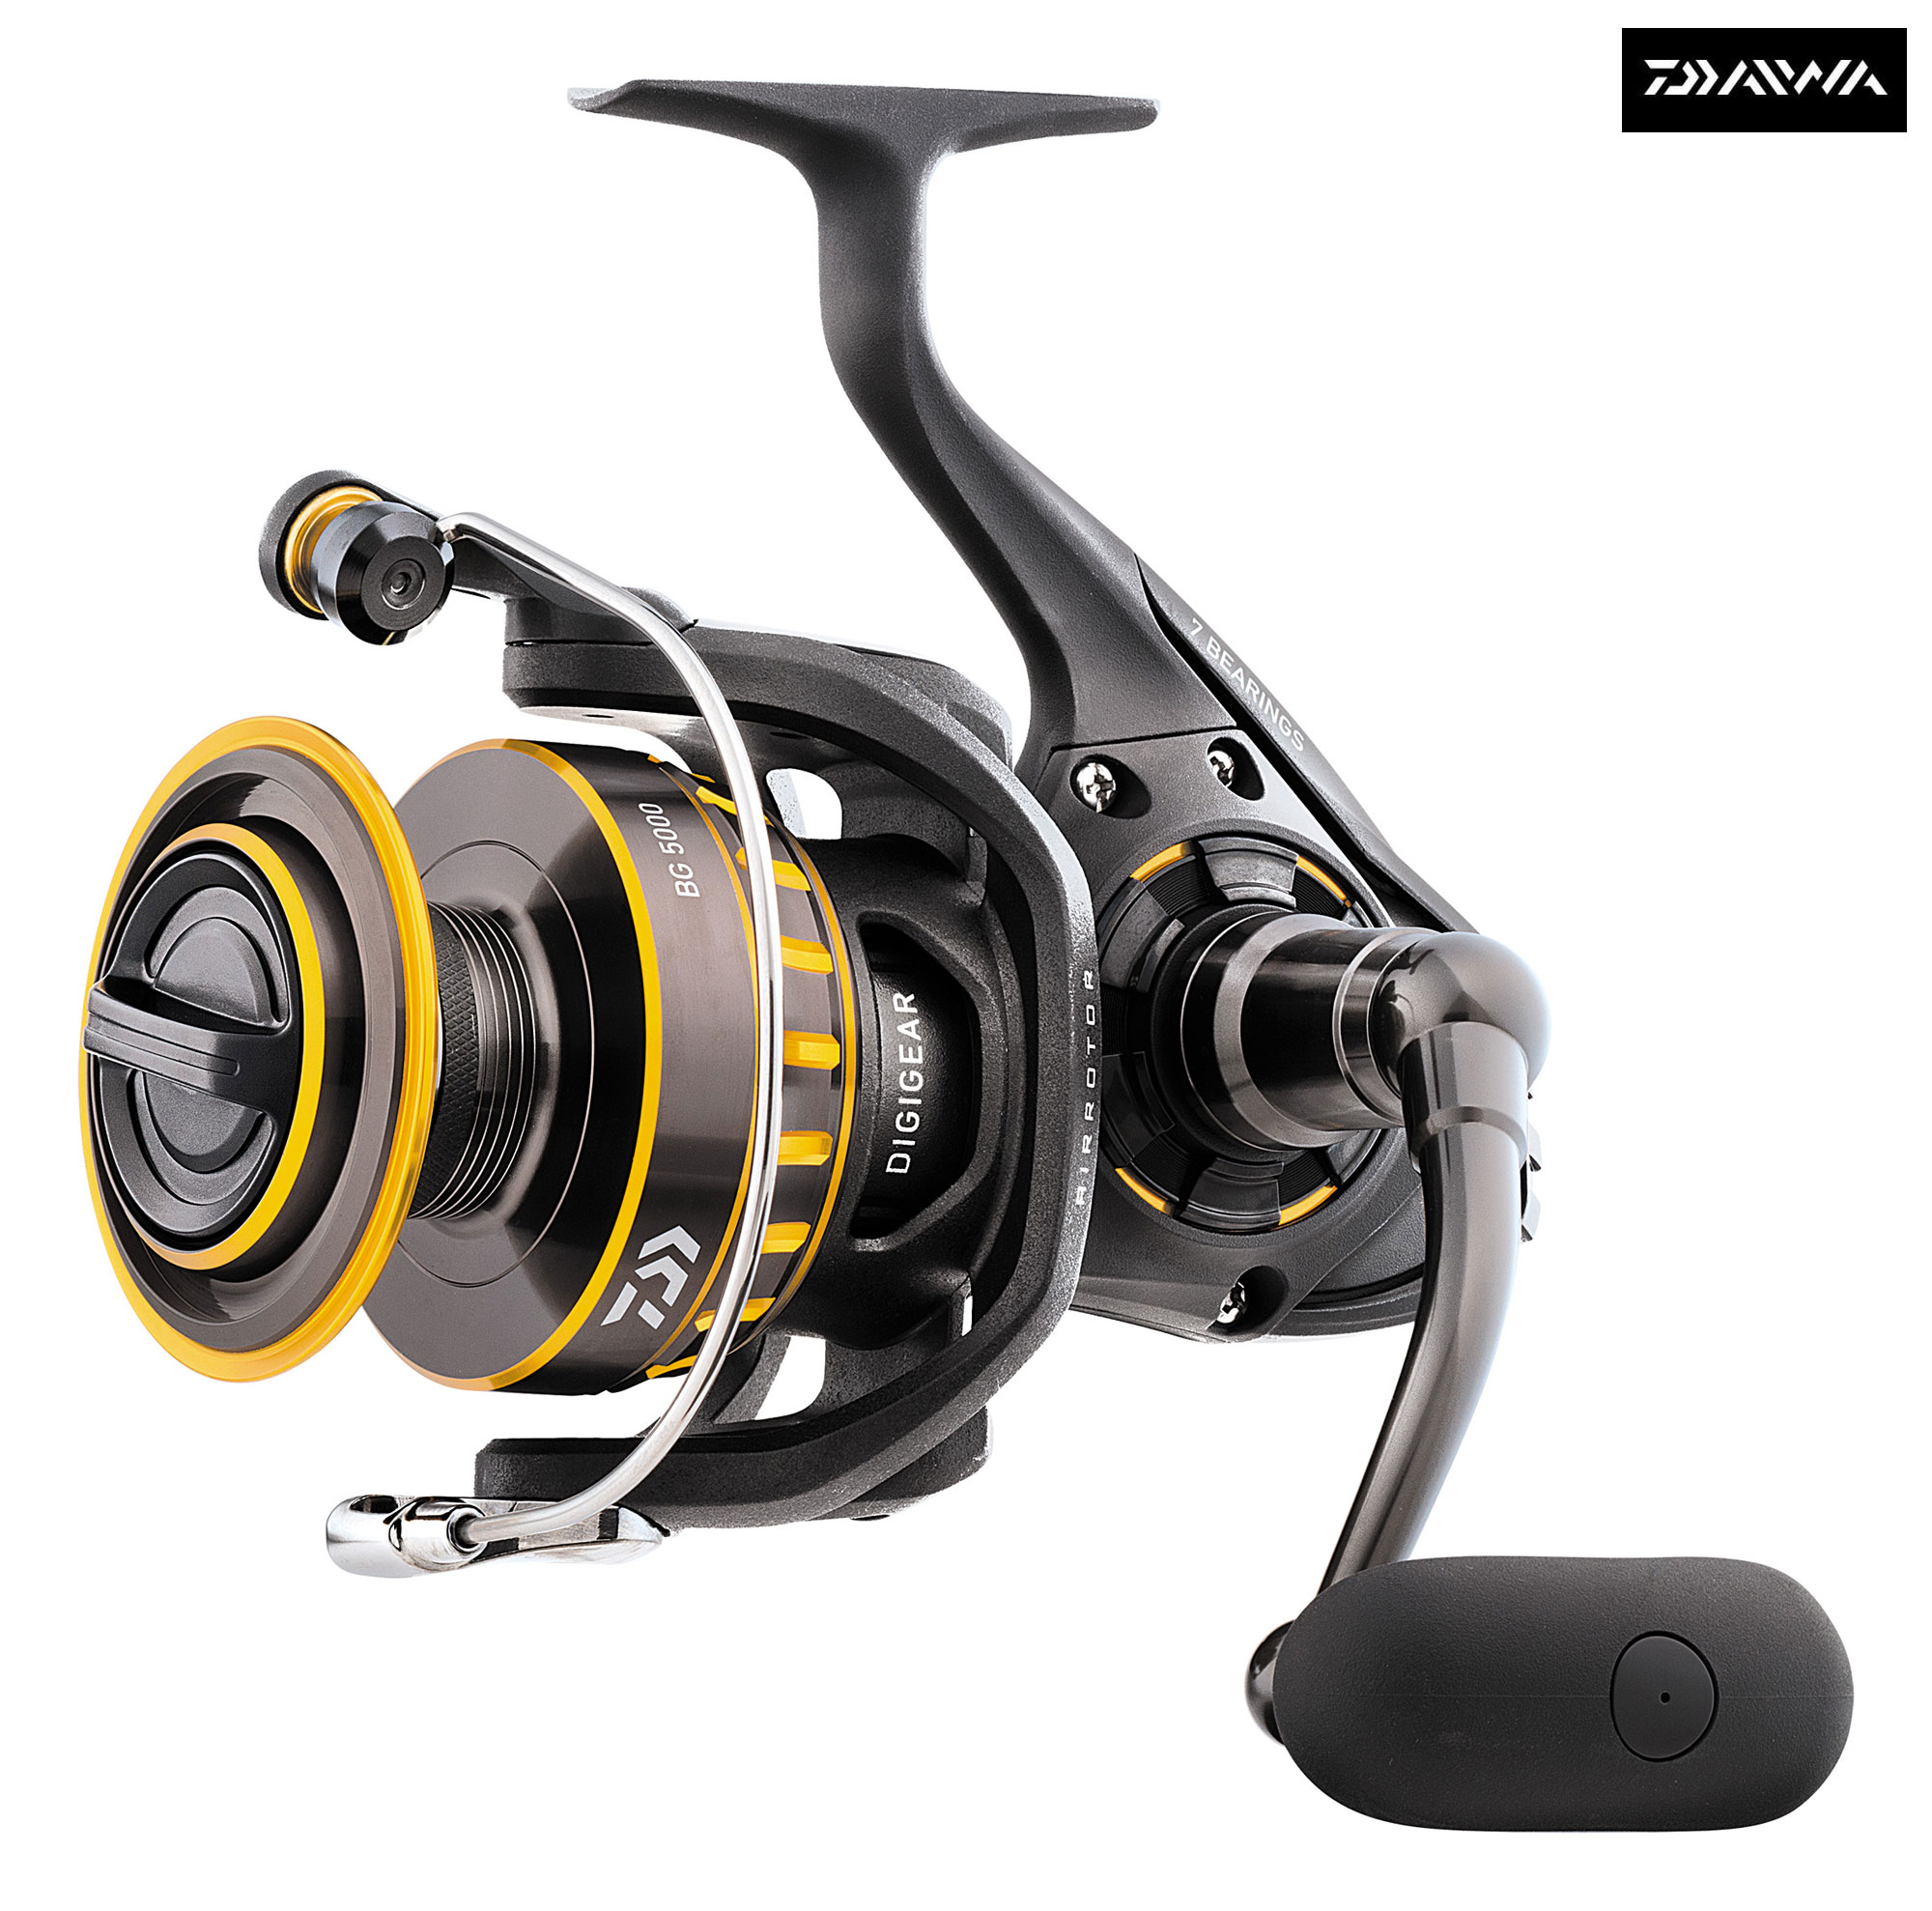 New daiwa bg spinning reels freshwater saltwater all for Daiwa fishing reels